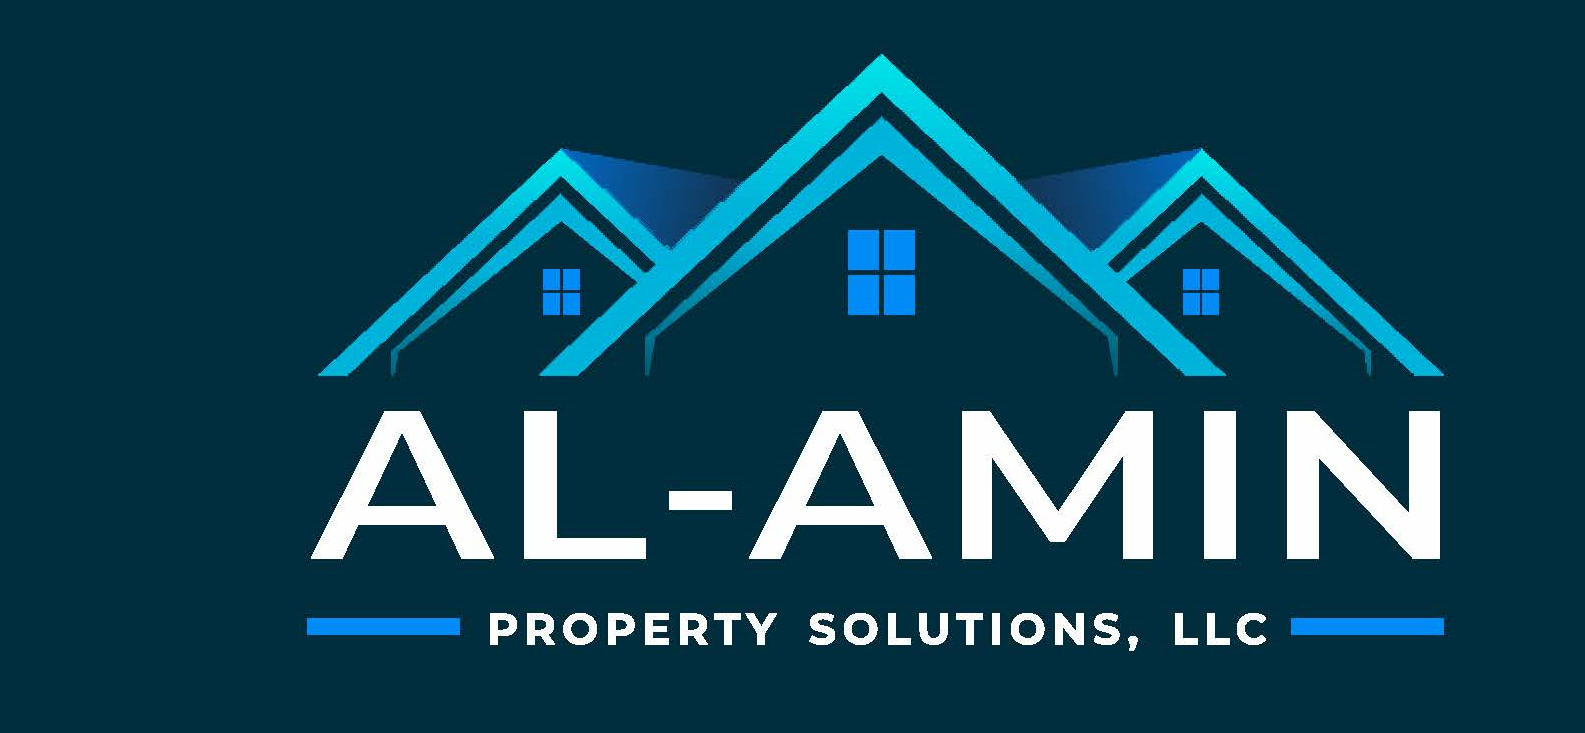 Al-amin Property Solutions, LLC